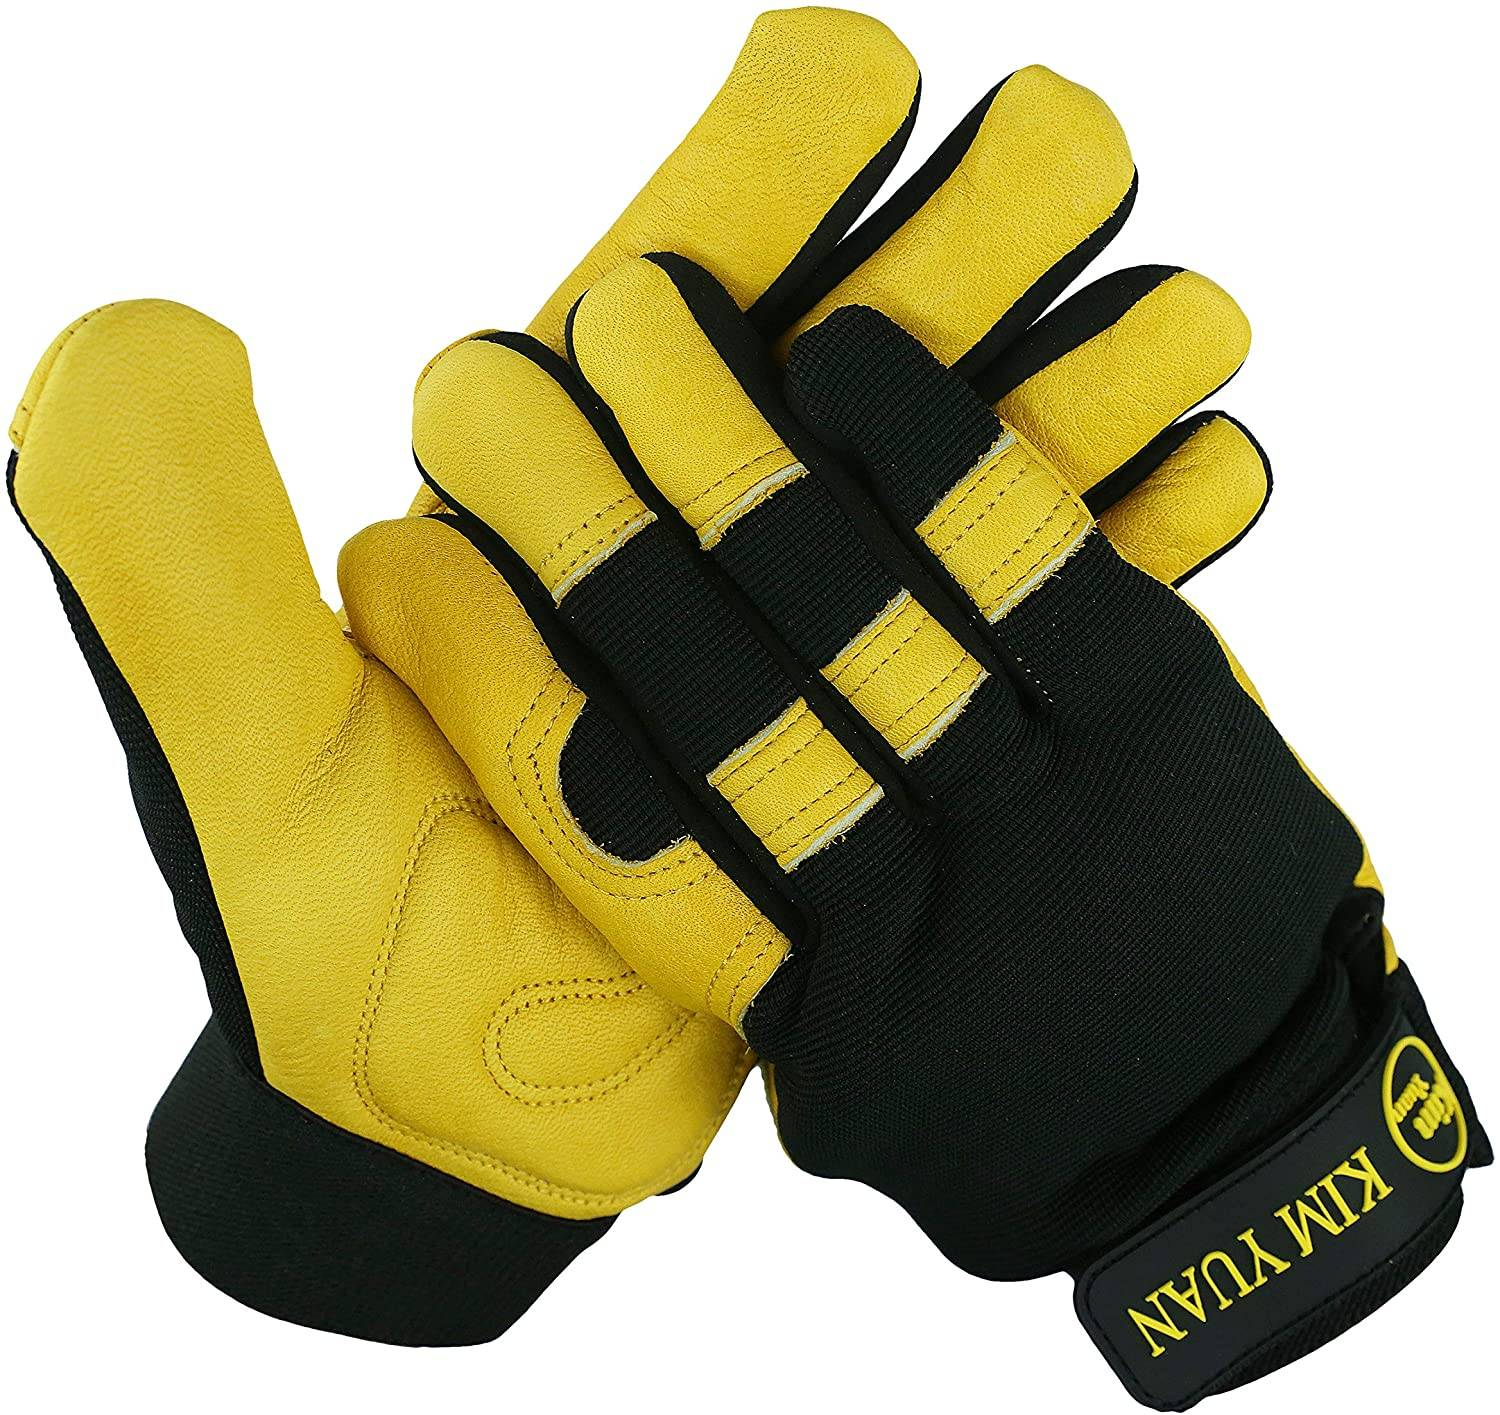 KIM YUAN Leather Motorcycle Gloves, Grain Cowhide Glove for Work, Driving, Gardening, Hunting, Climbing - Extremely Soft and Snug Fit - Superior Grip Reinforced Palm Padding